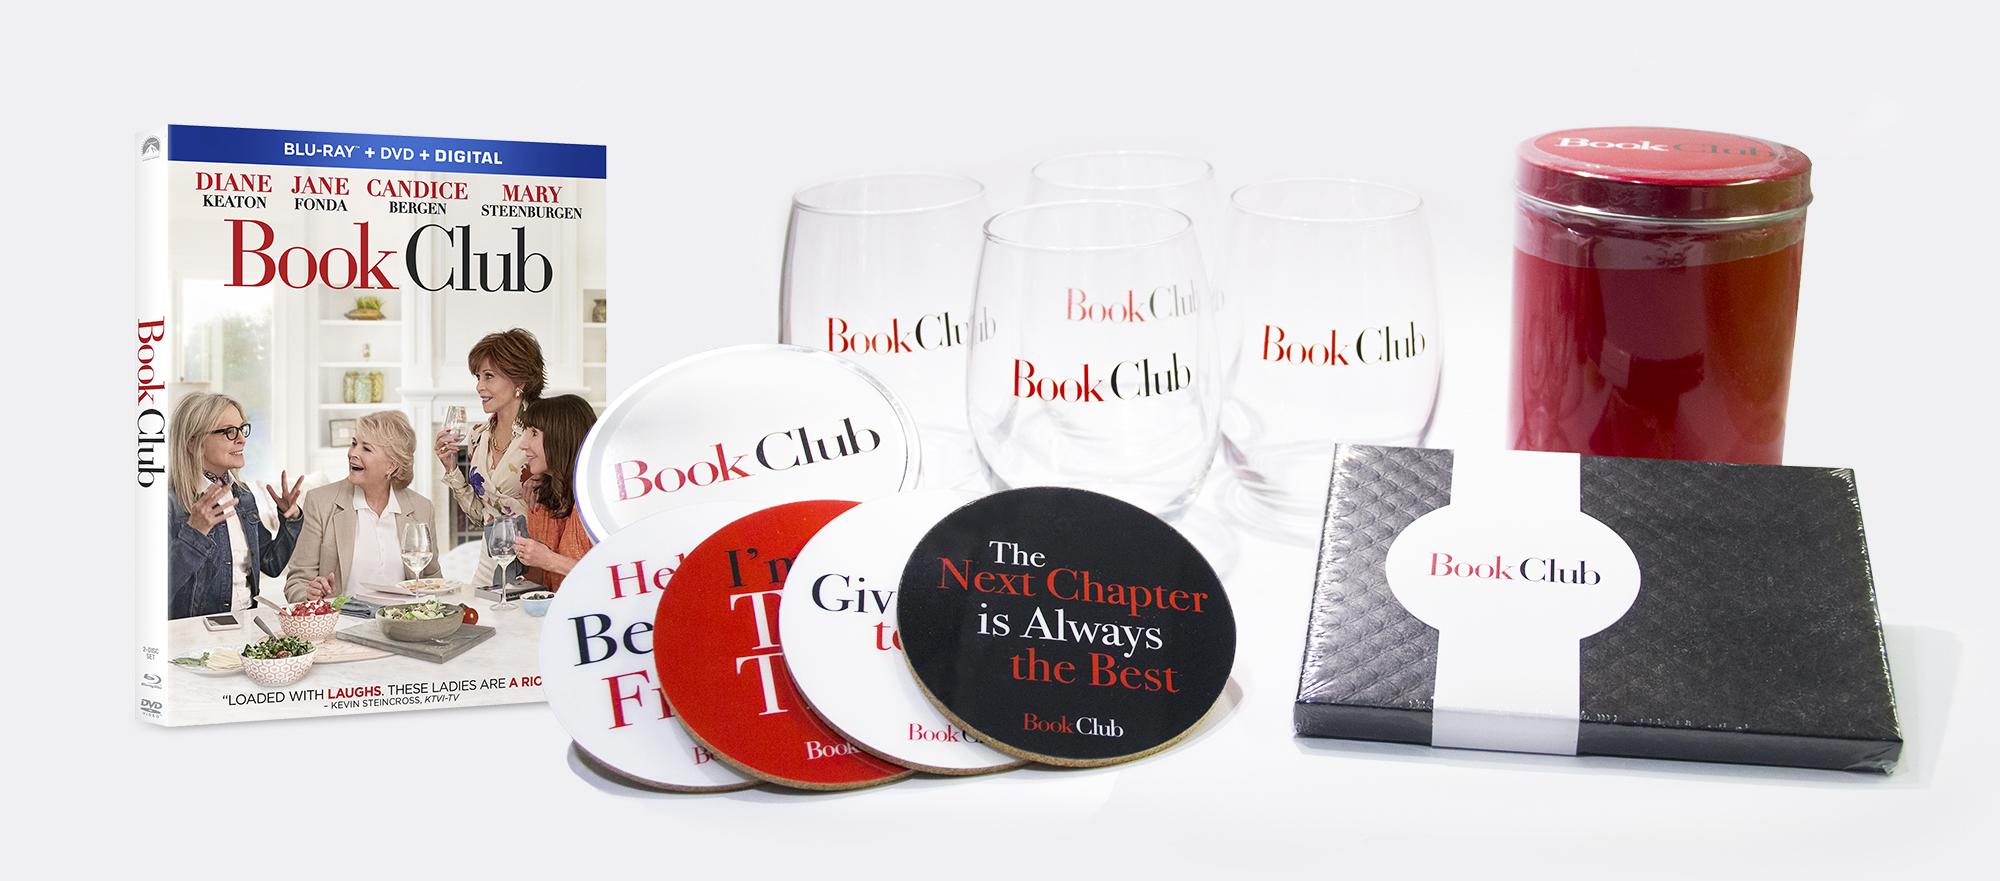 BOOK CLUB Now Available on DVD/Blu-Ray #BookClubMovie - It's